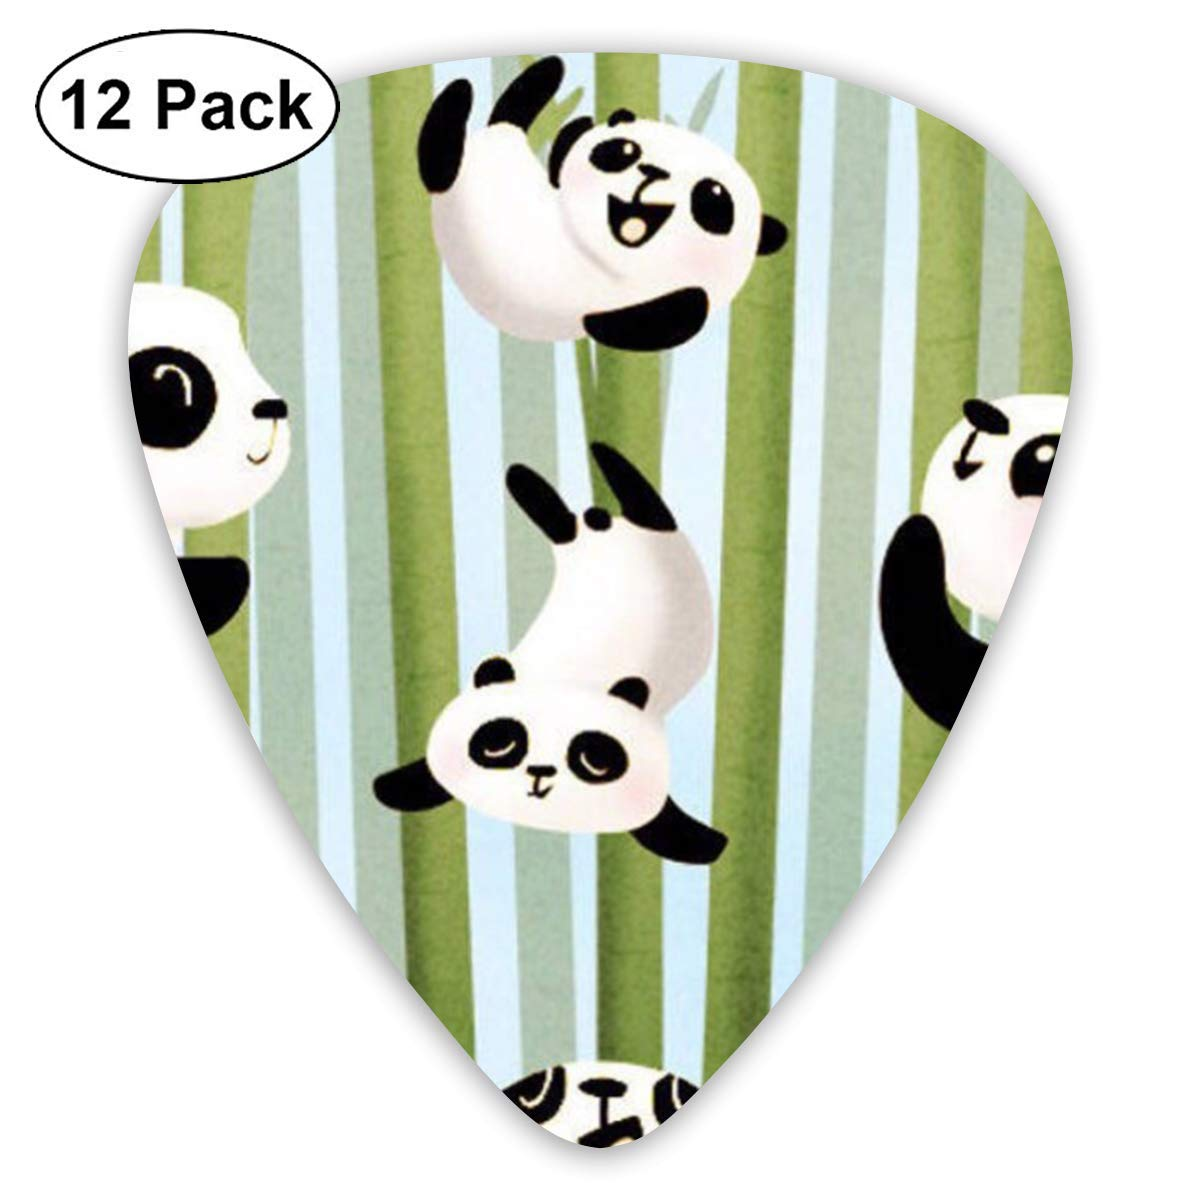 12 Pack Guitar Picks Panda Play in The Bamboo Think, Medium and Heavy,Unique Guitar Gift for Bass, Electric & Acoustic Guitars: Amazon.es: Instrumentos musicales